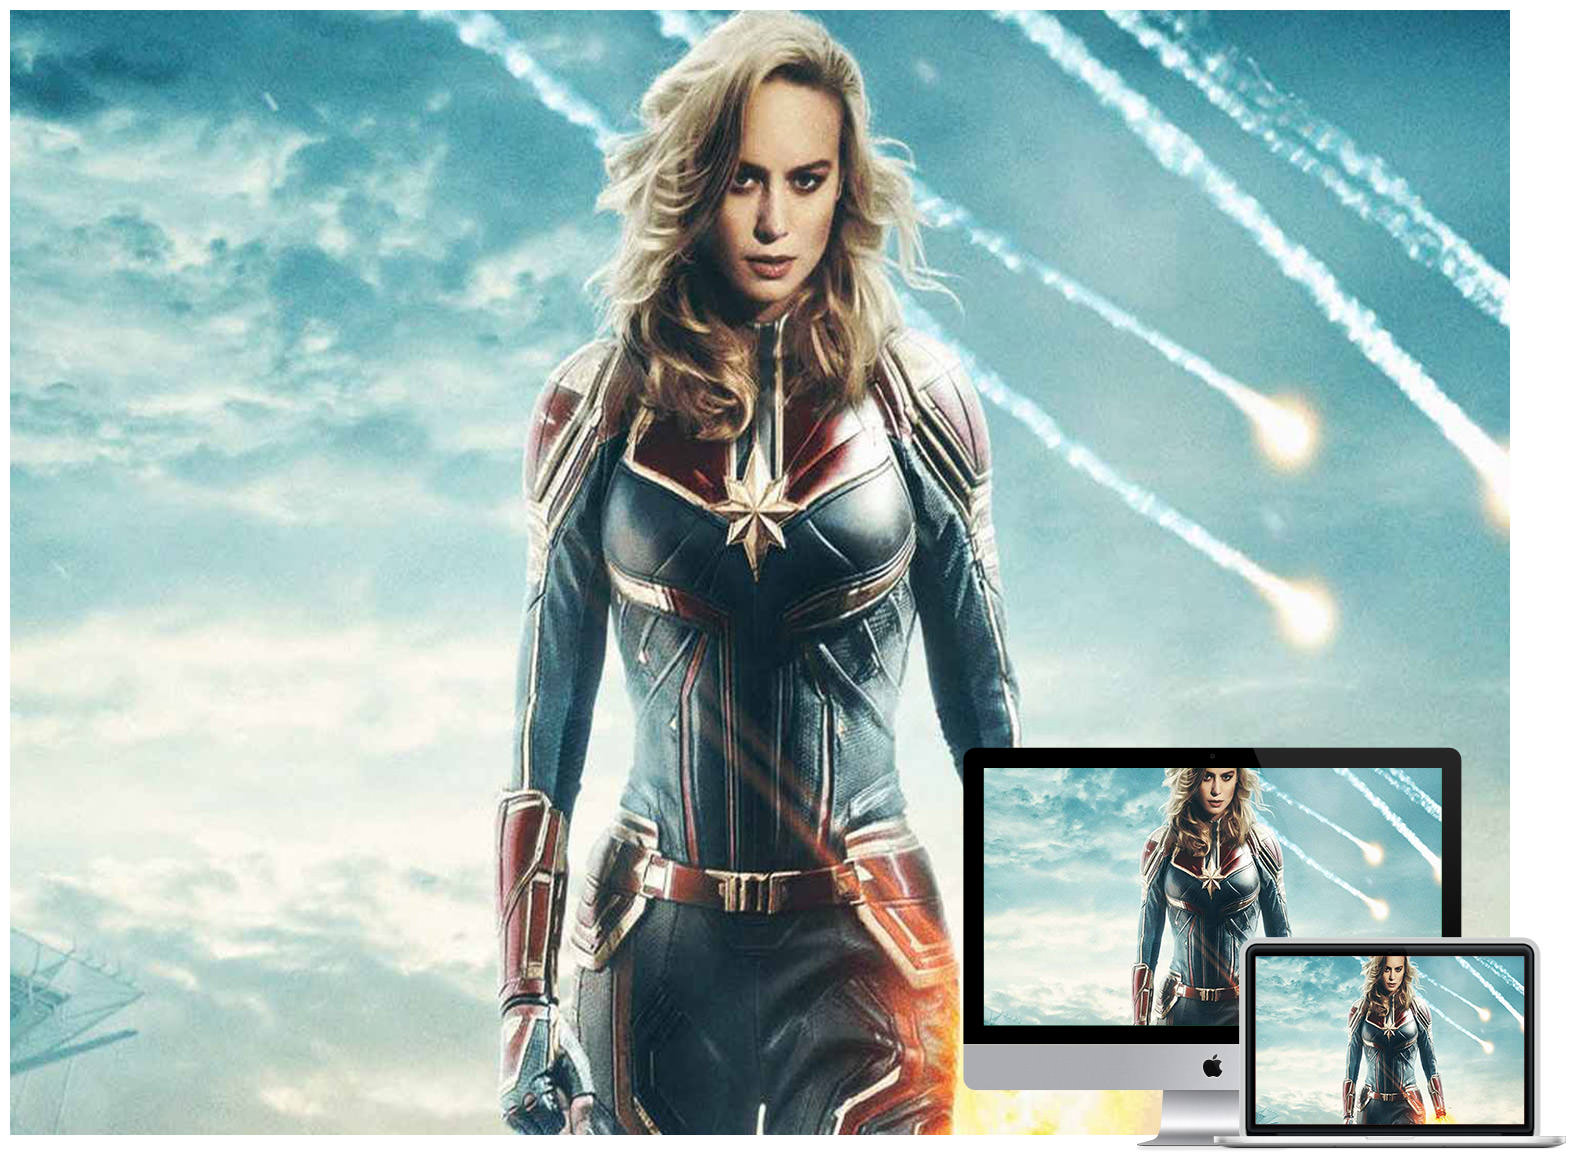 Brie Larson as Captain Marvel 2